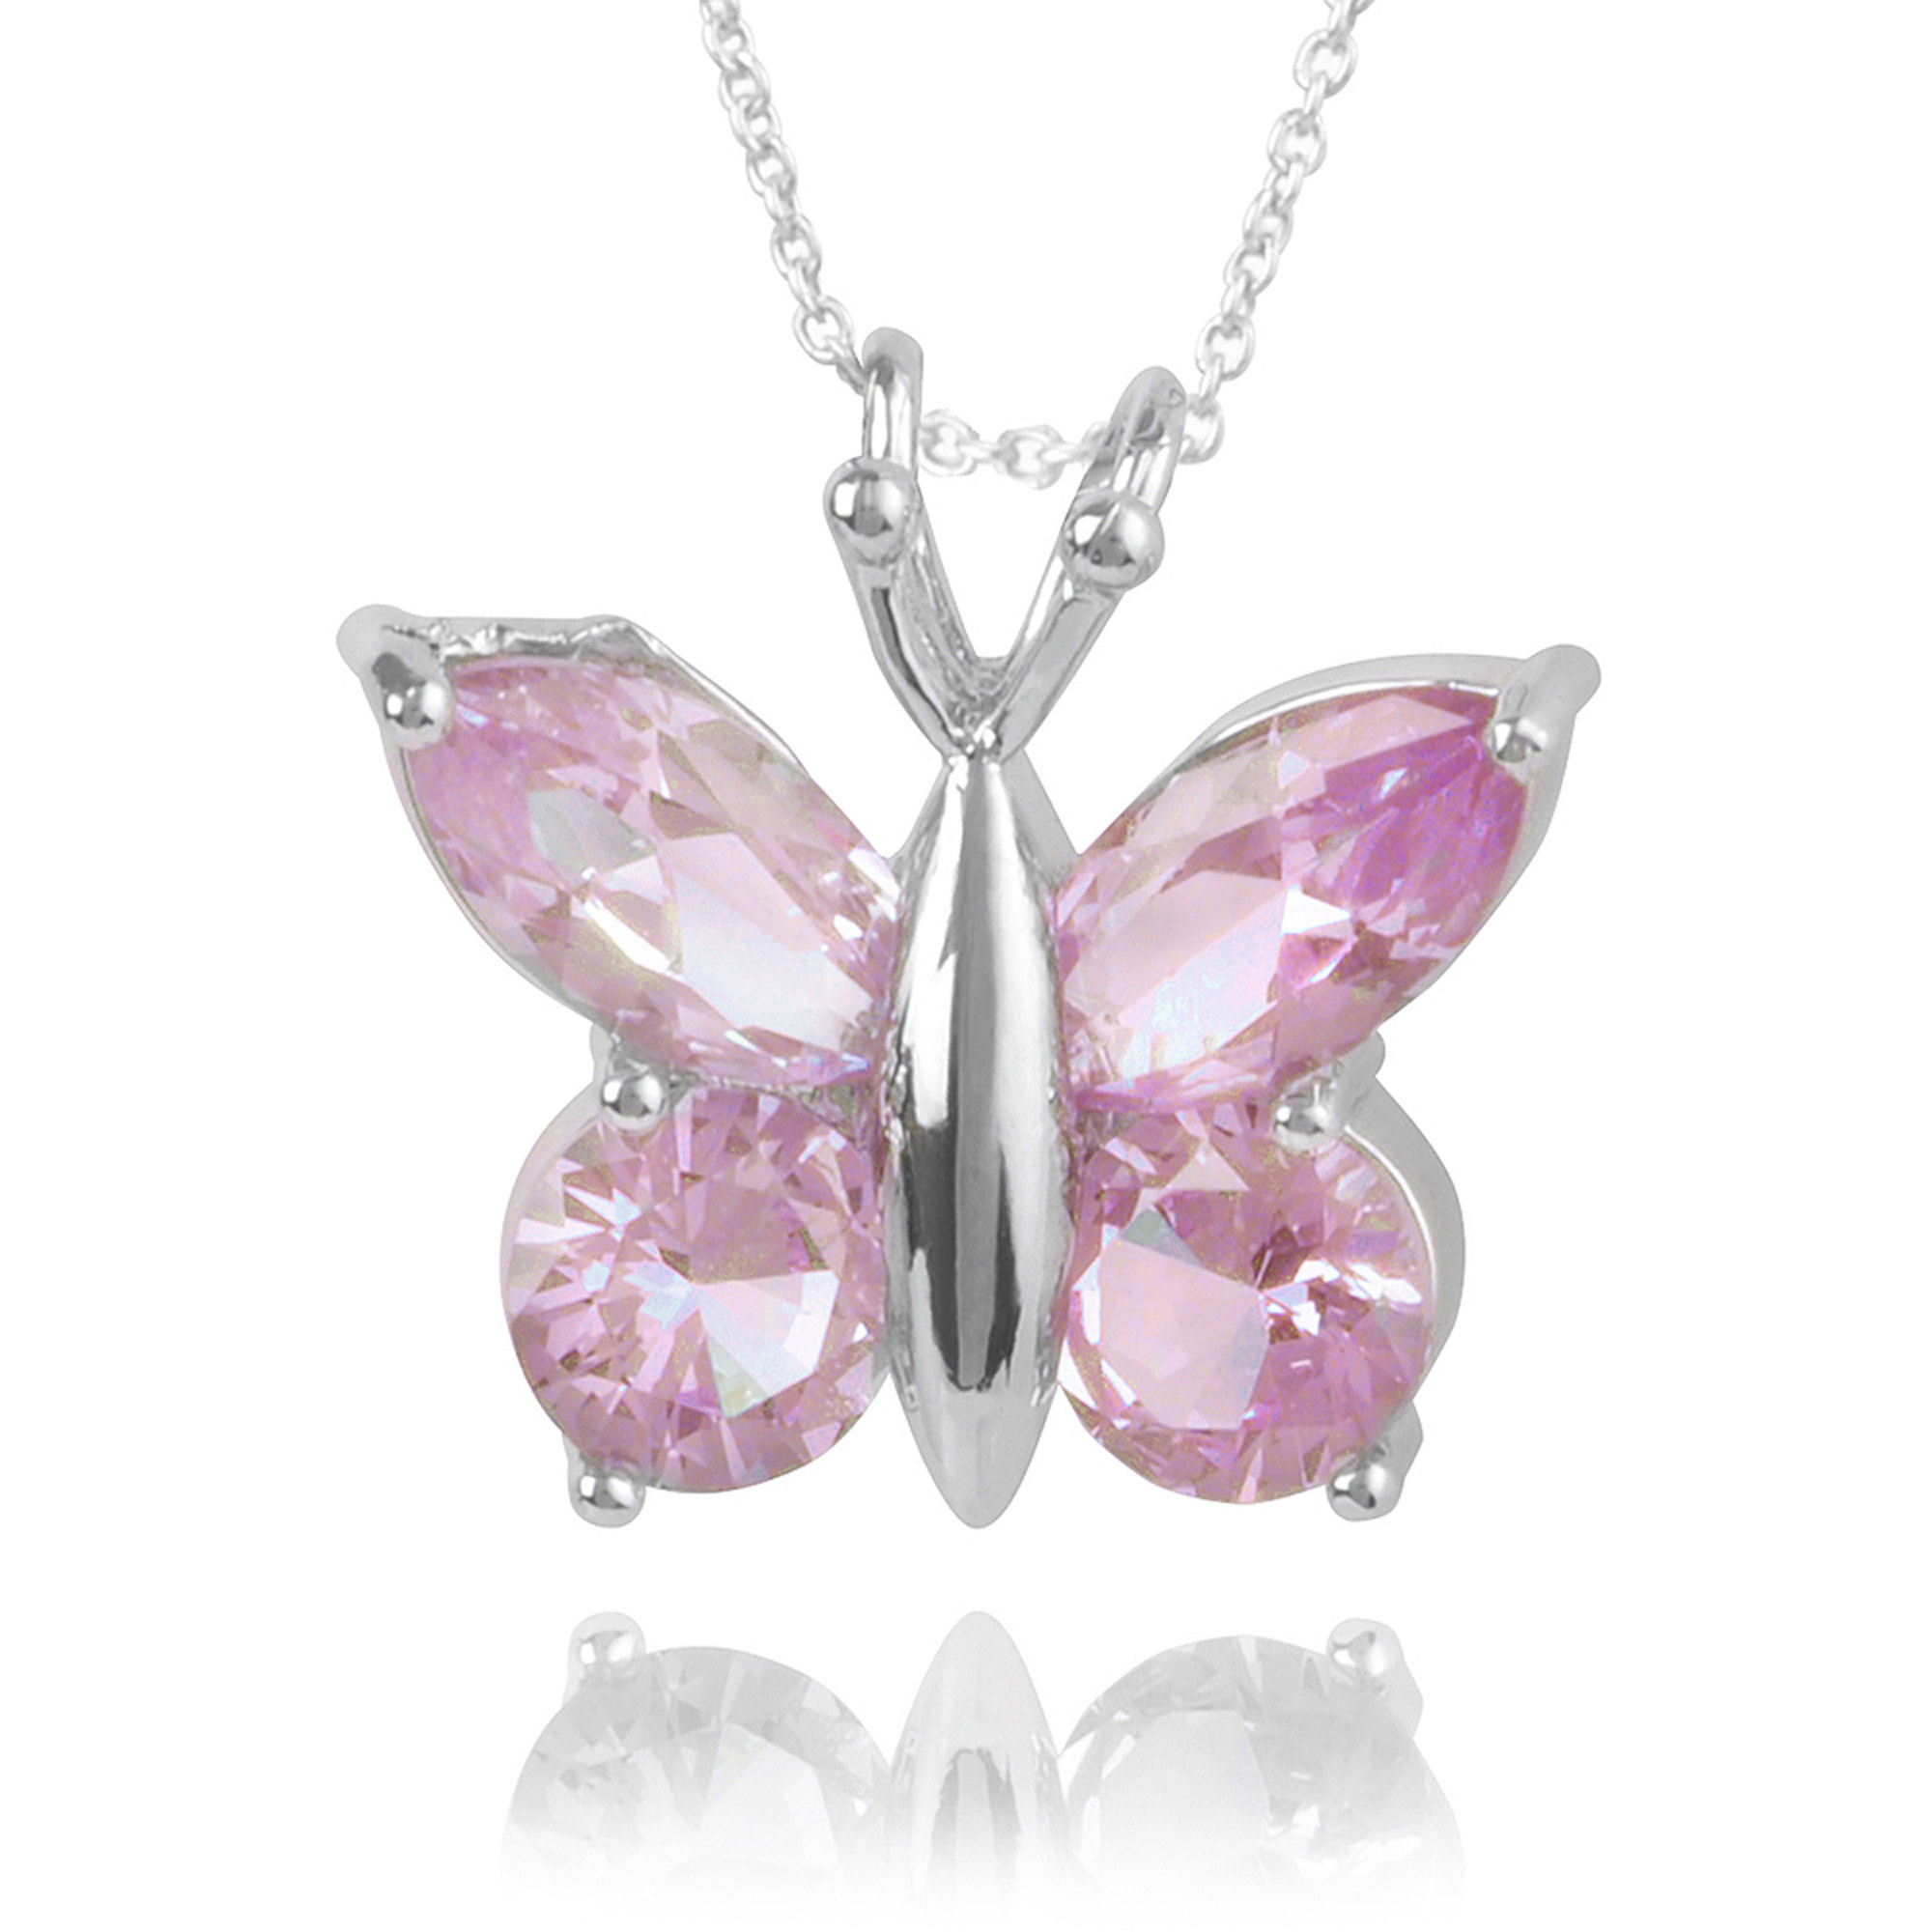 Brinley Co. Women's CZ Sterling Silver Butterfly Pendant Fashion Necklace, Pink, 18""